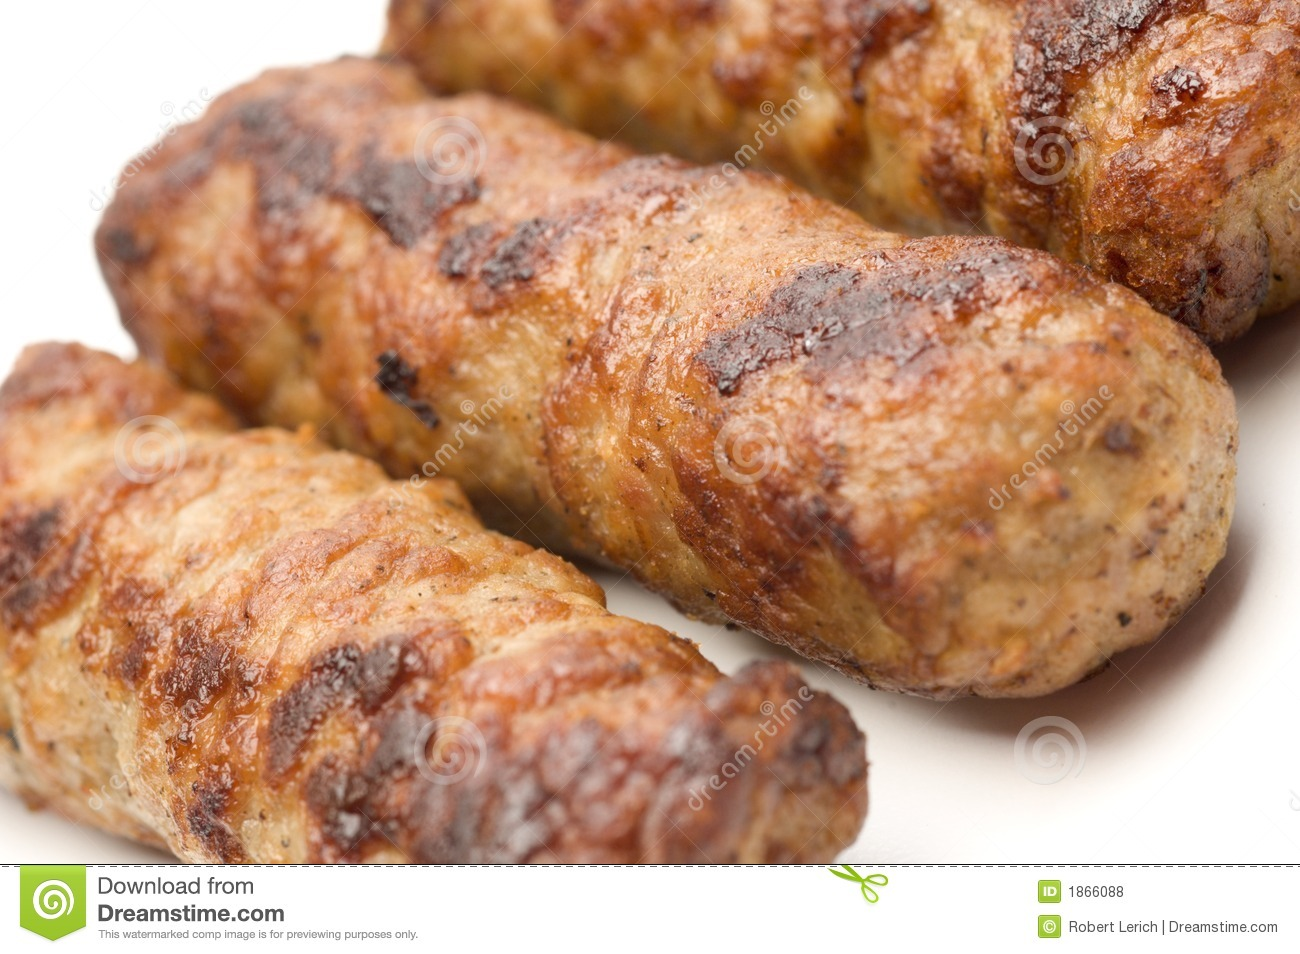 how to cook sausage links on gas grill